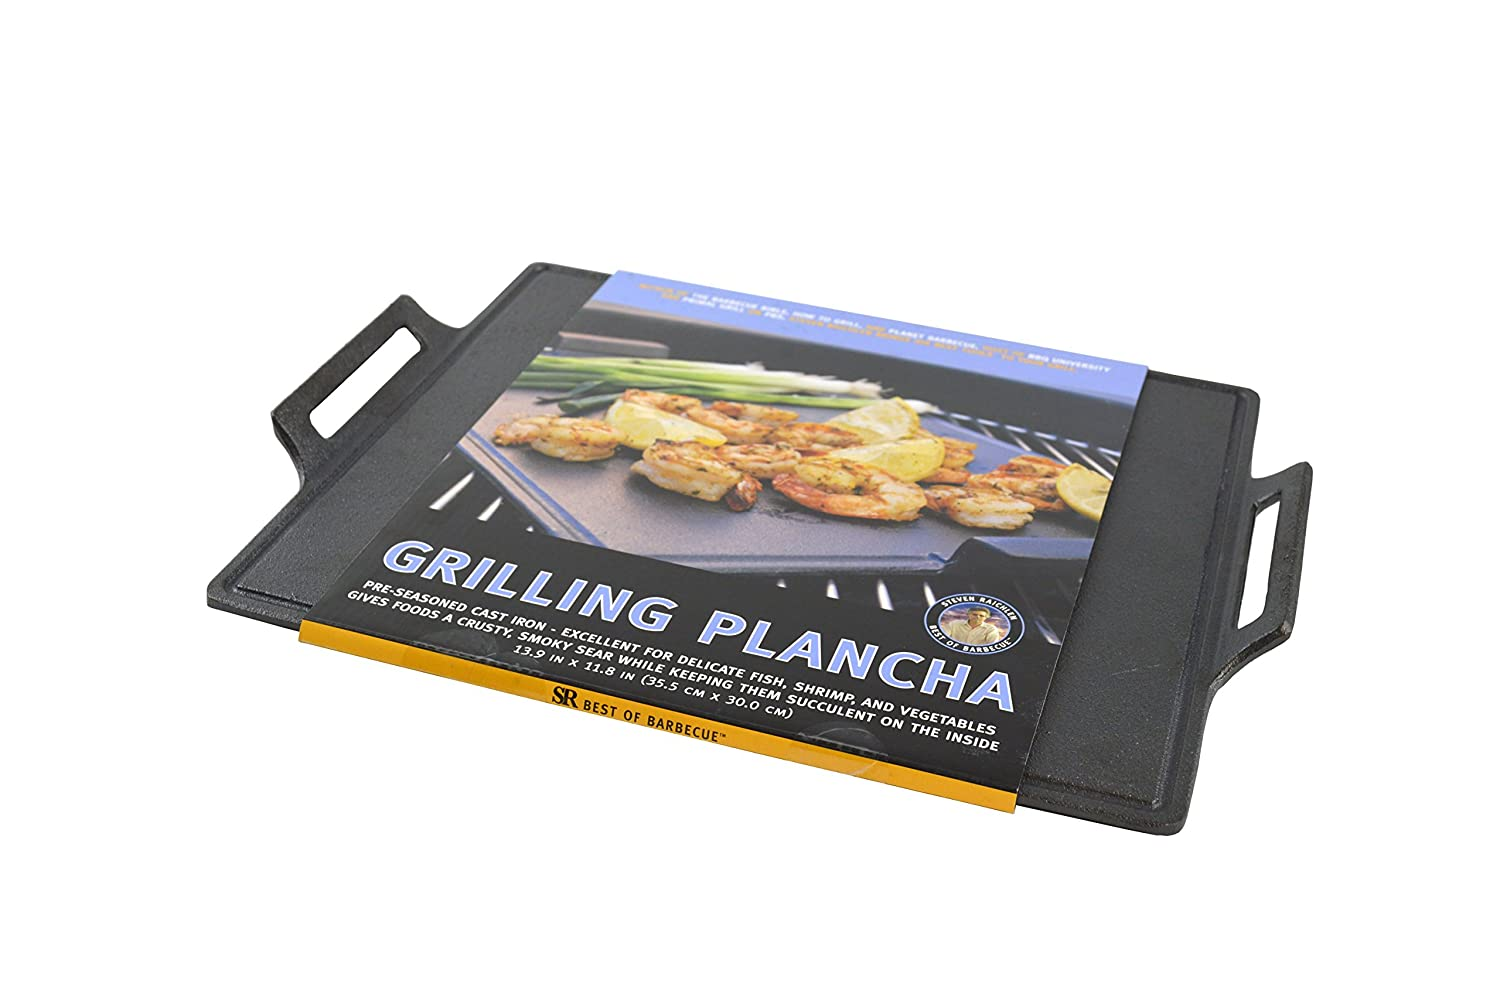 plancha grill for sale plancha gaz bp gas plancha grill cooking electric heater plates panini. Black Bedroom Furniture Sets. Home Design Ideas